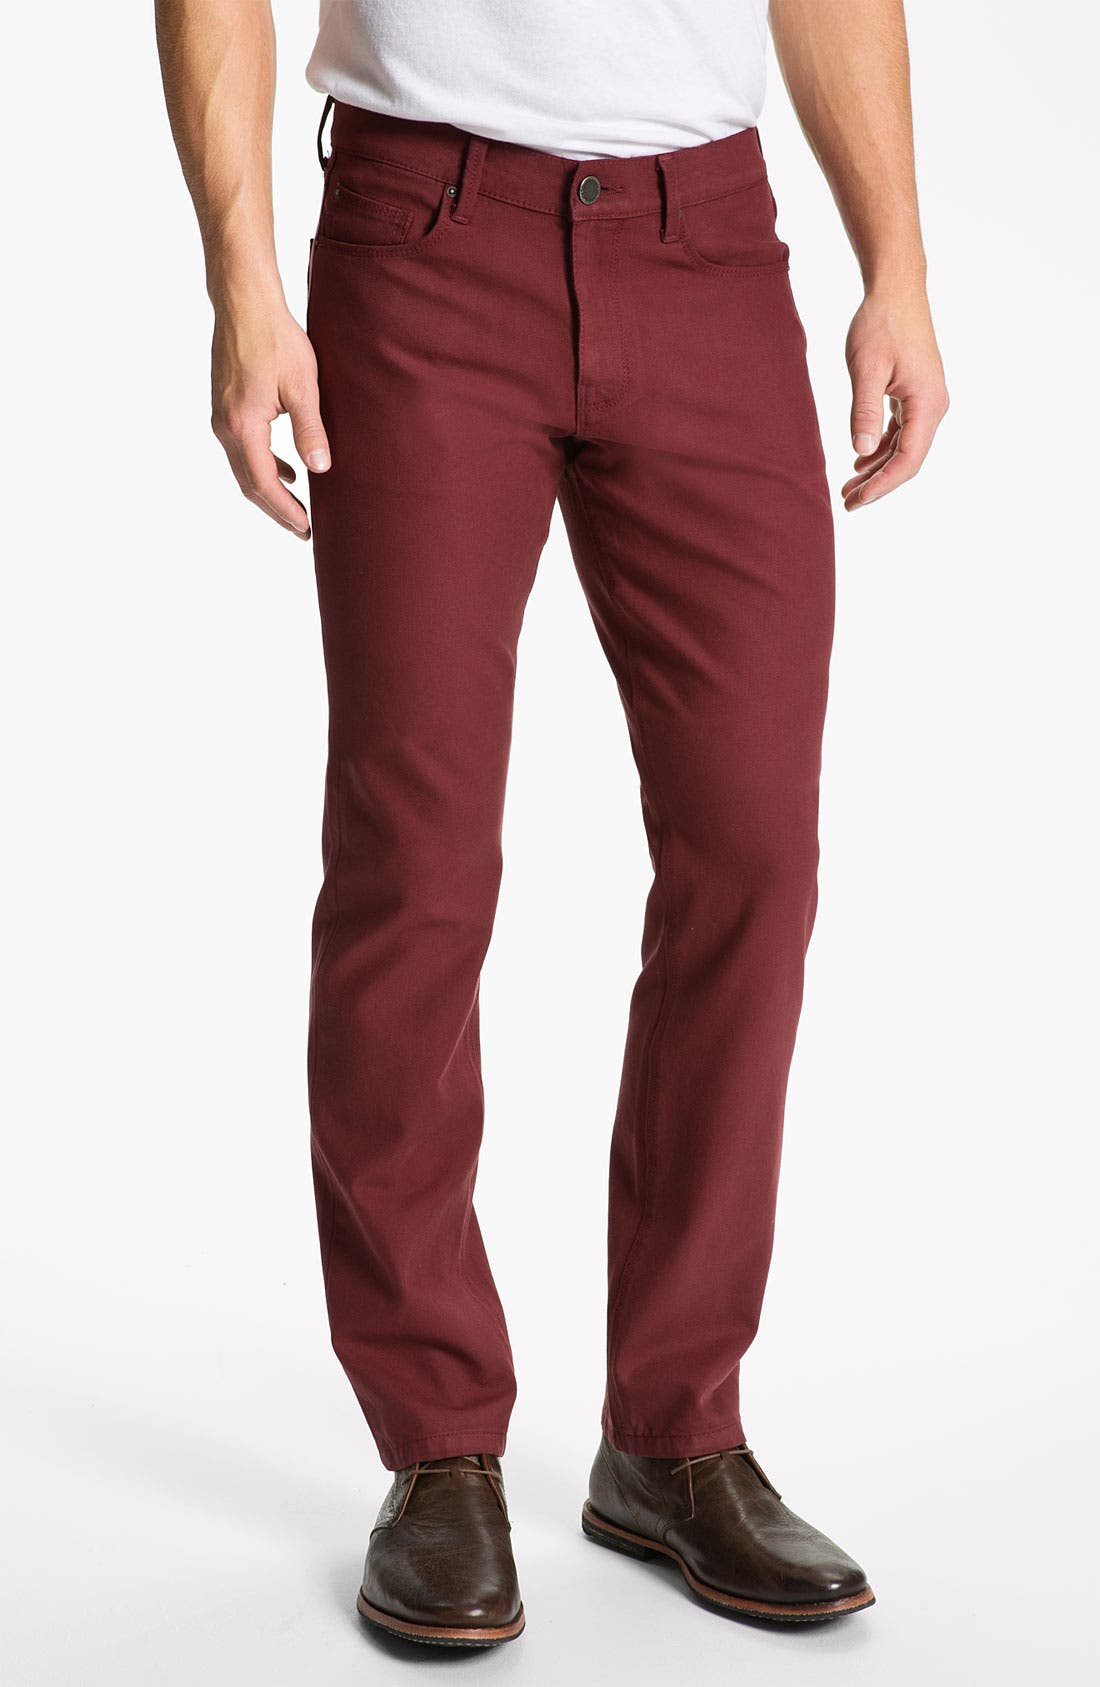 Alternate Image 1 Selected - DL1961 'Russell' Slim Straight Jeans (Firebird)